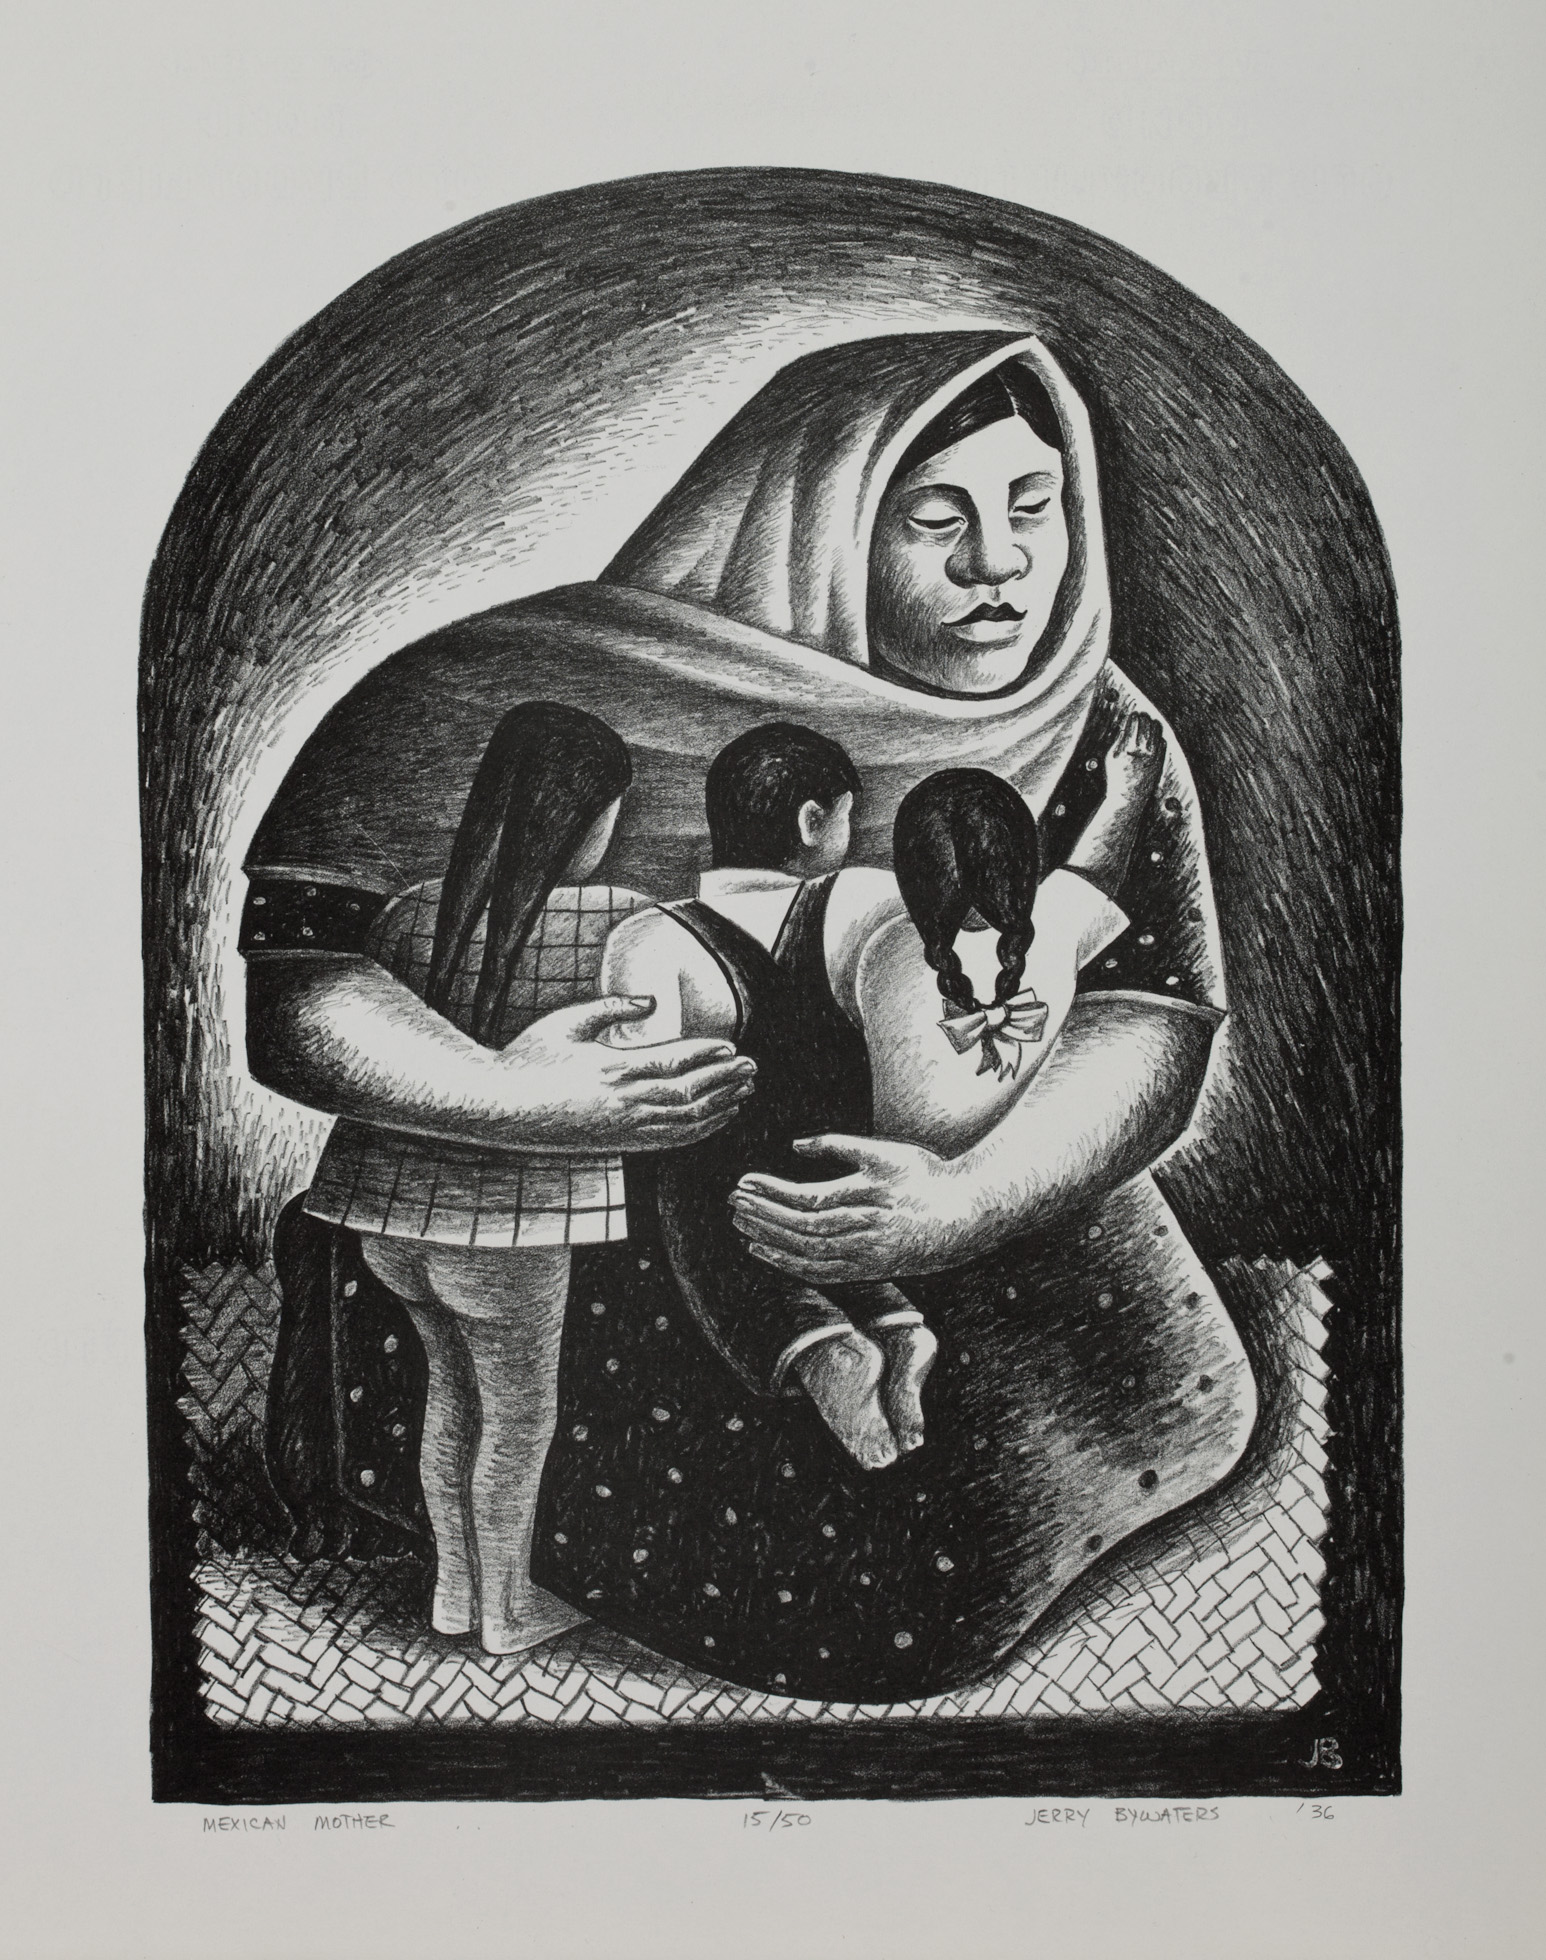 Mexican Mother by Jerry Bywaters